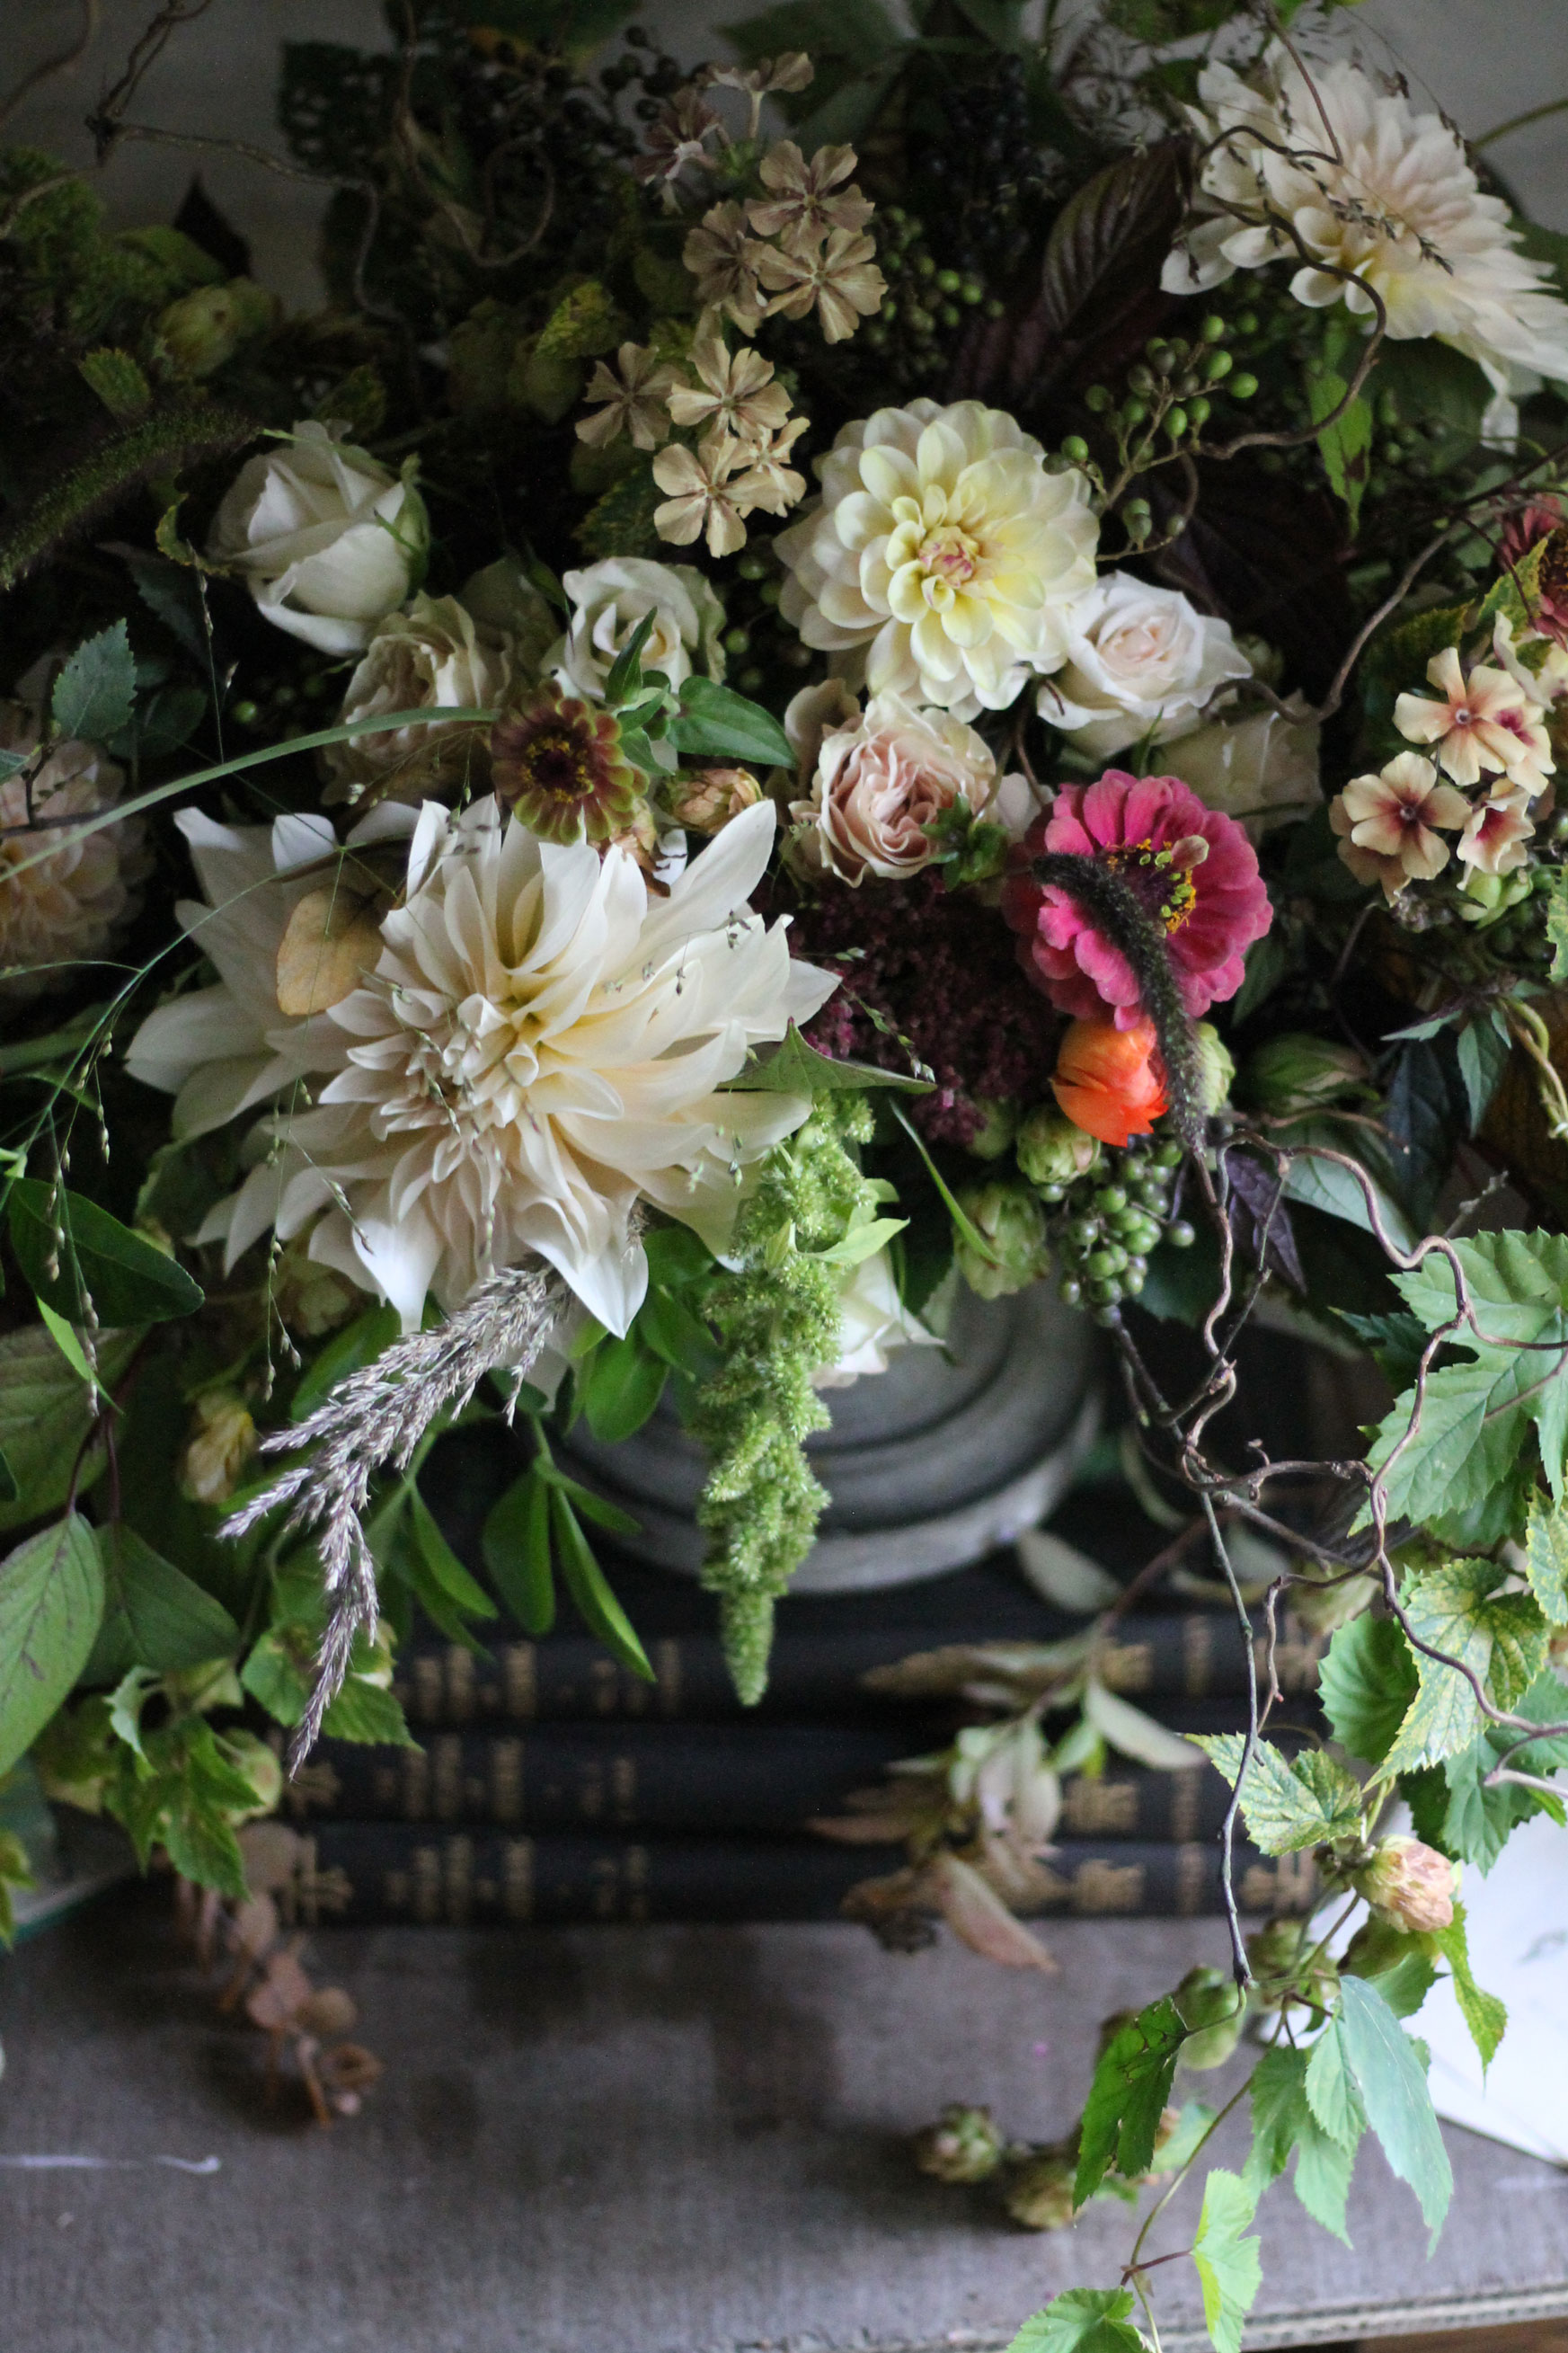 sarah-harper-floral-design-luxury-wedding-florist-flowers-oxfordshite-cotsworlds-gallery-IMG_6775-copy